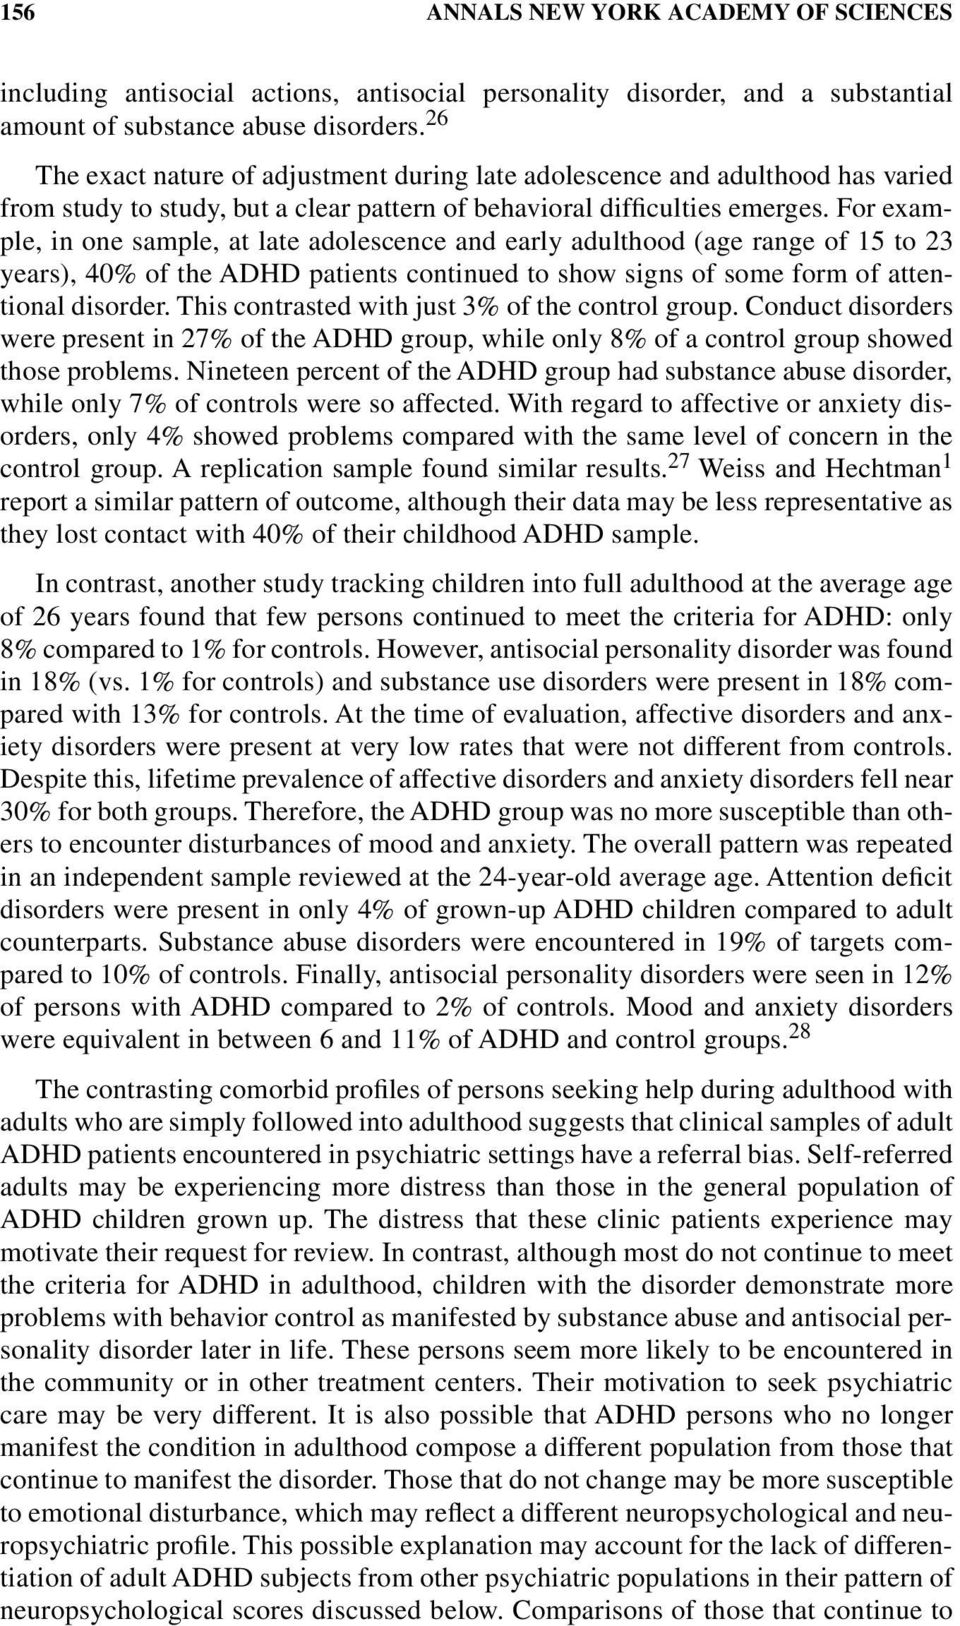 For example, in one sample, at late adolescence and early adulthood (age range of 15 to 23 years), 40% of the ADHD patients continued to show signs of some form of attentional disorder.